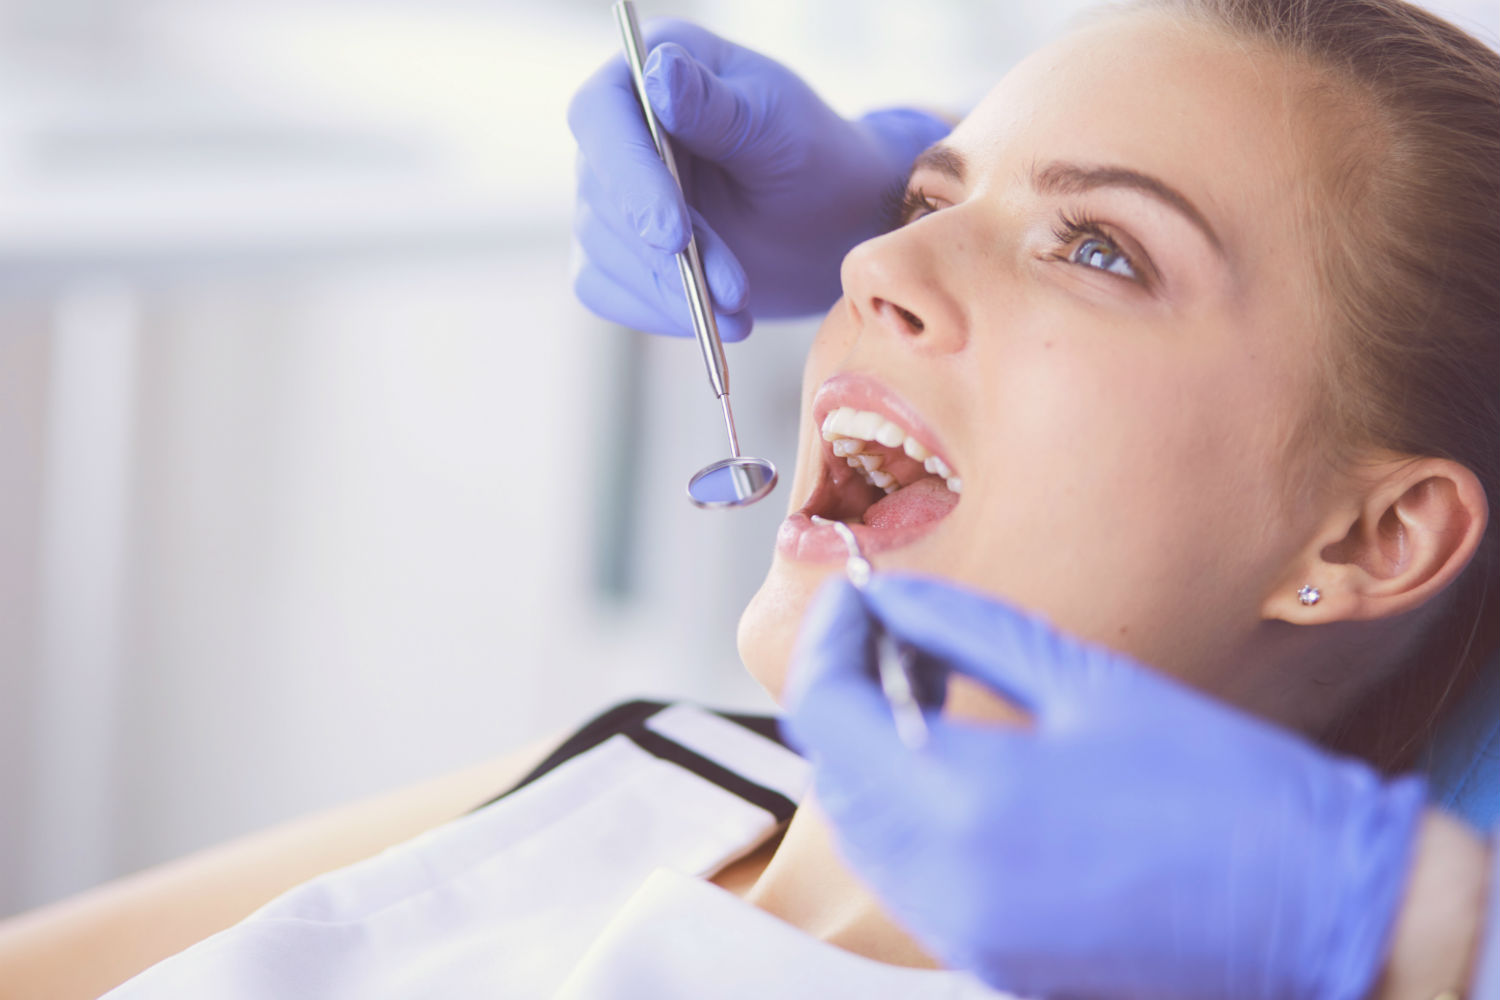 How Does A Healthy Mouth Prevent COVID-19?